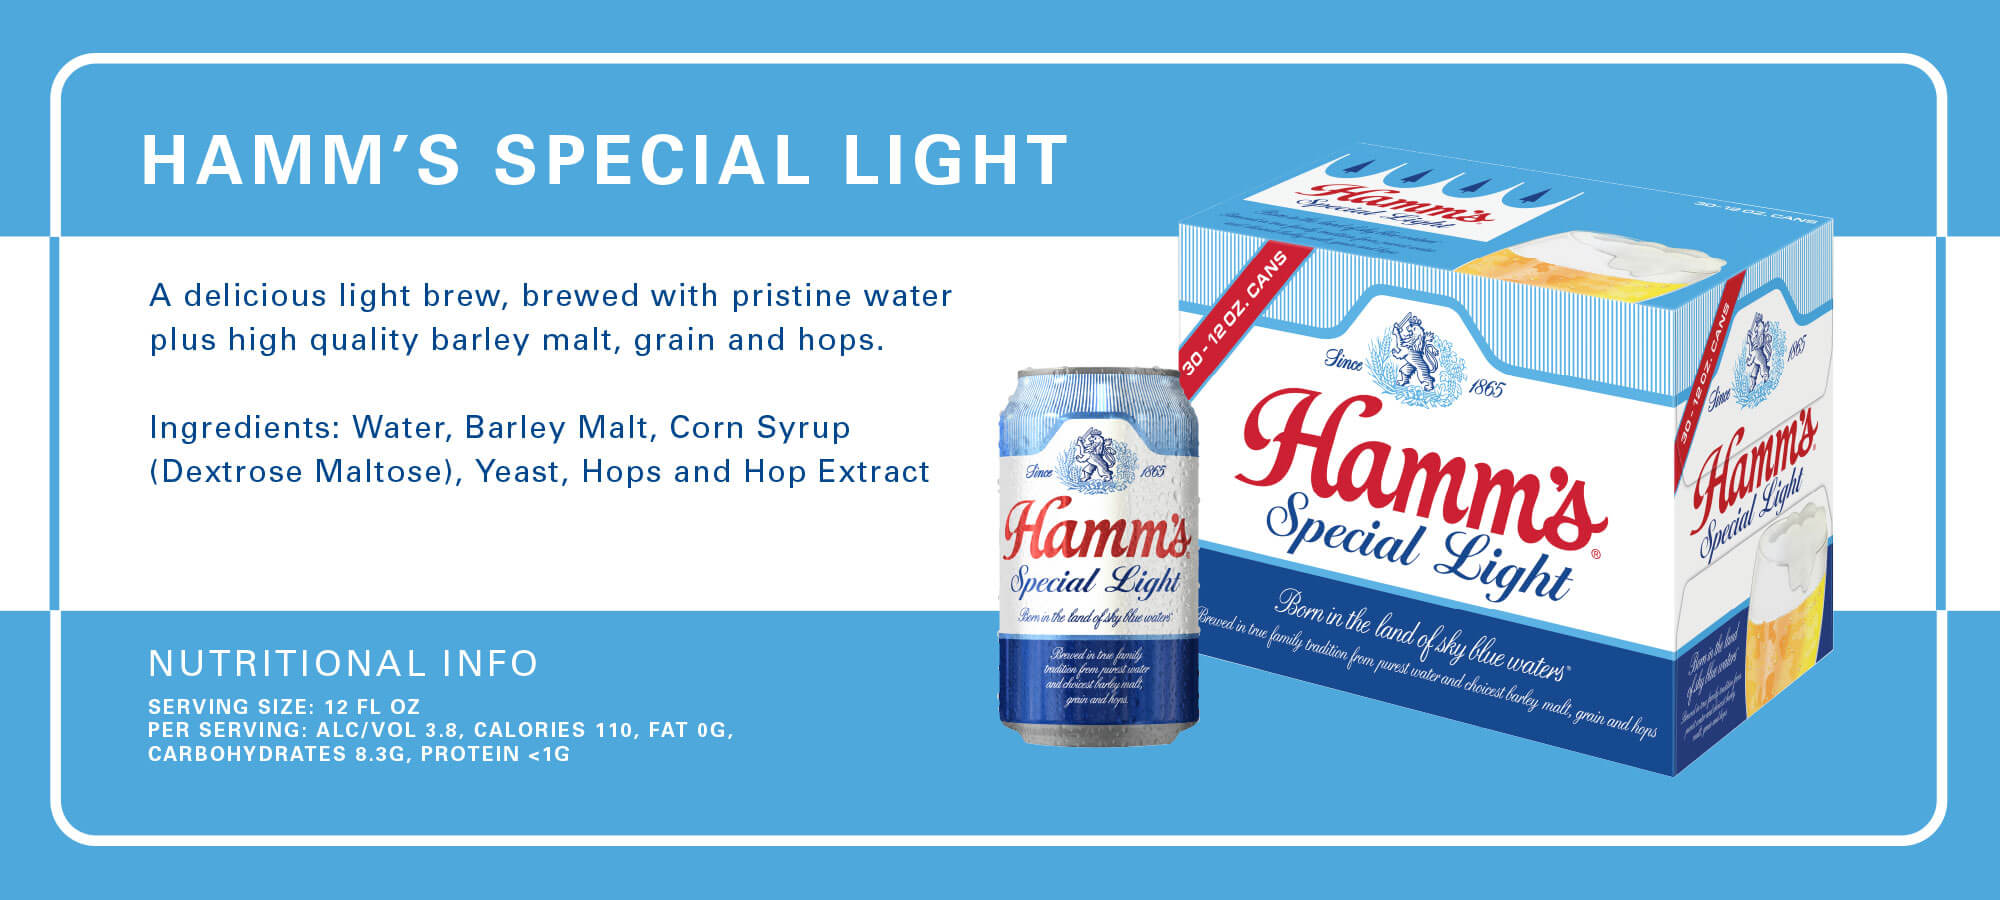 Hamm's Beer Light